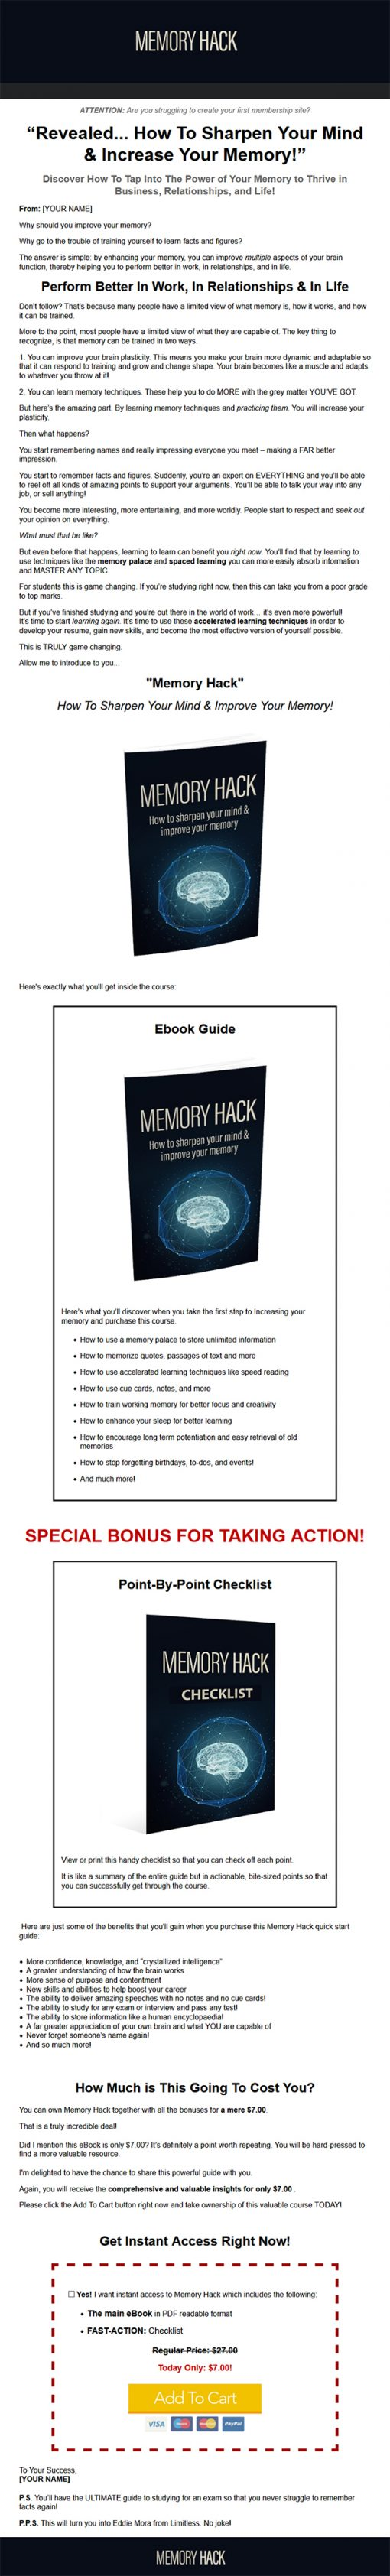 Memory Hack Ebook with Master Resale Rights